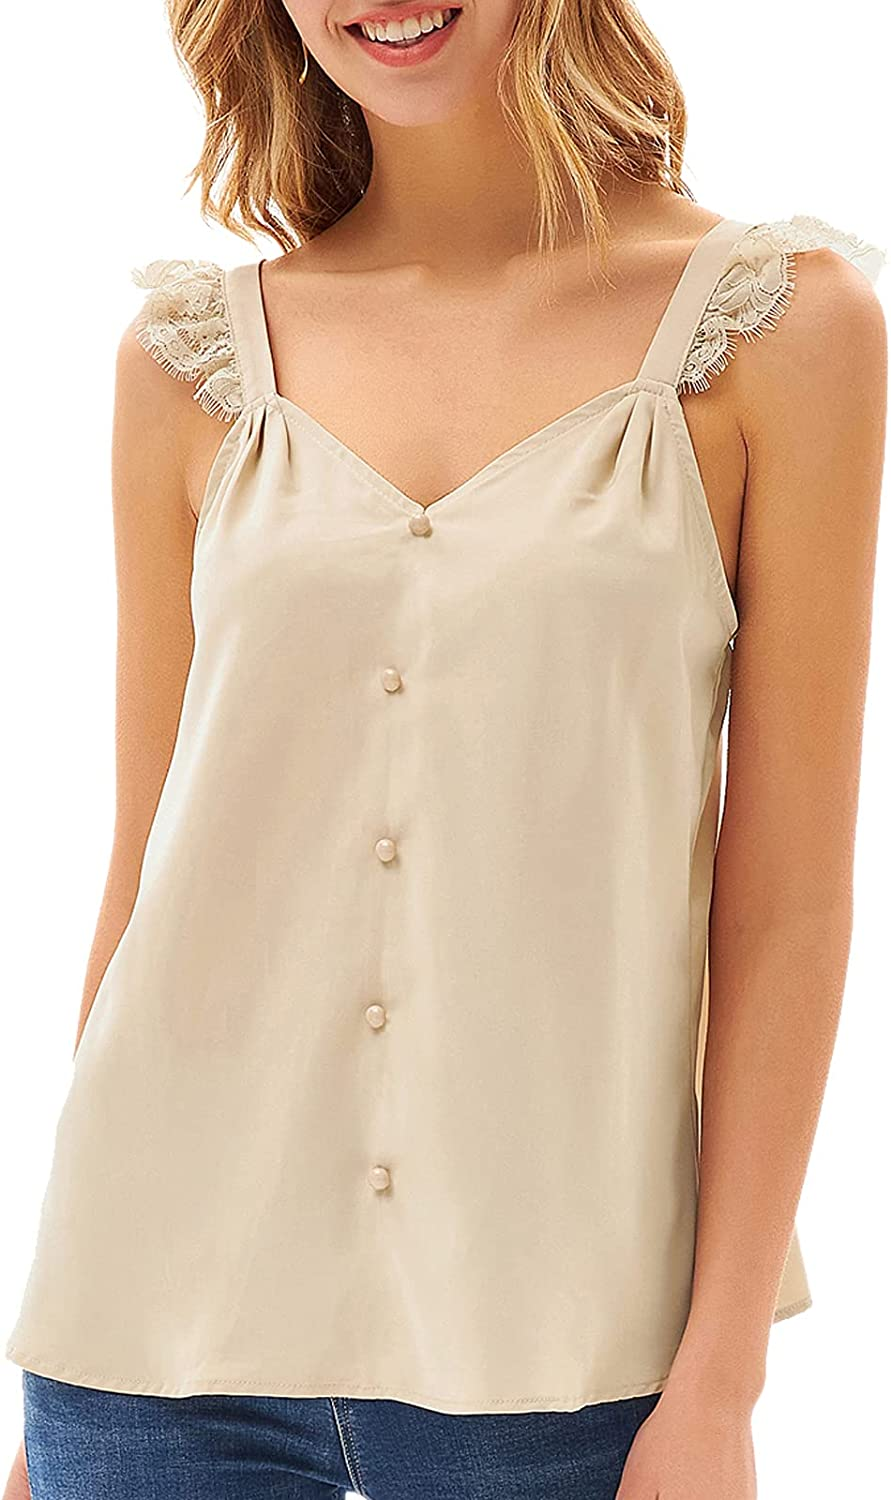 GRACE KARIN Womens Lace Tank Tops Button V Neck Sleeveless Tops Camis Pleated Casual Summer Shirts Blouse